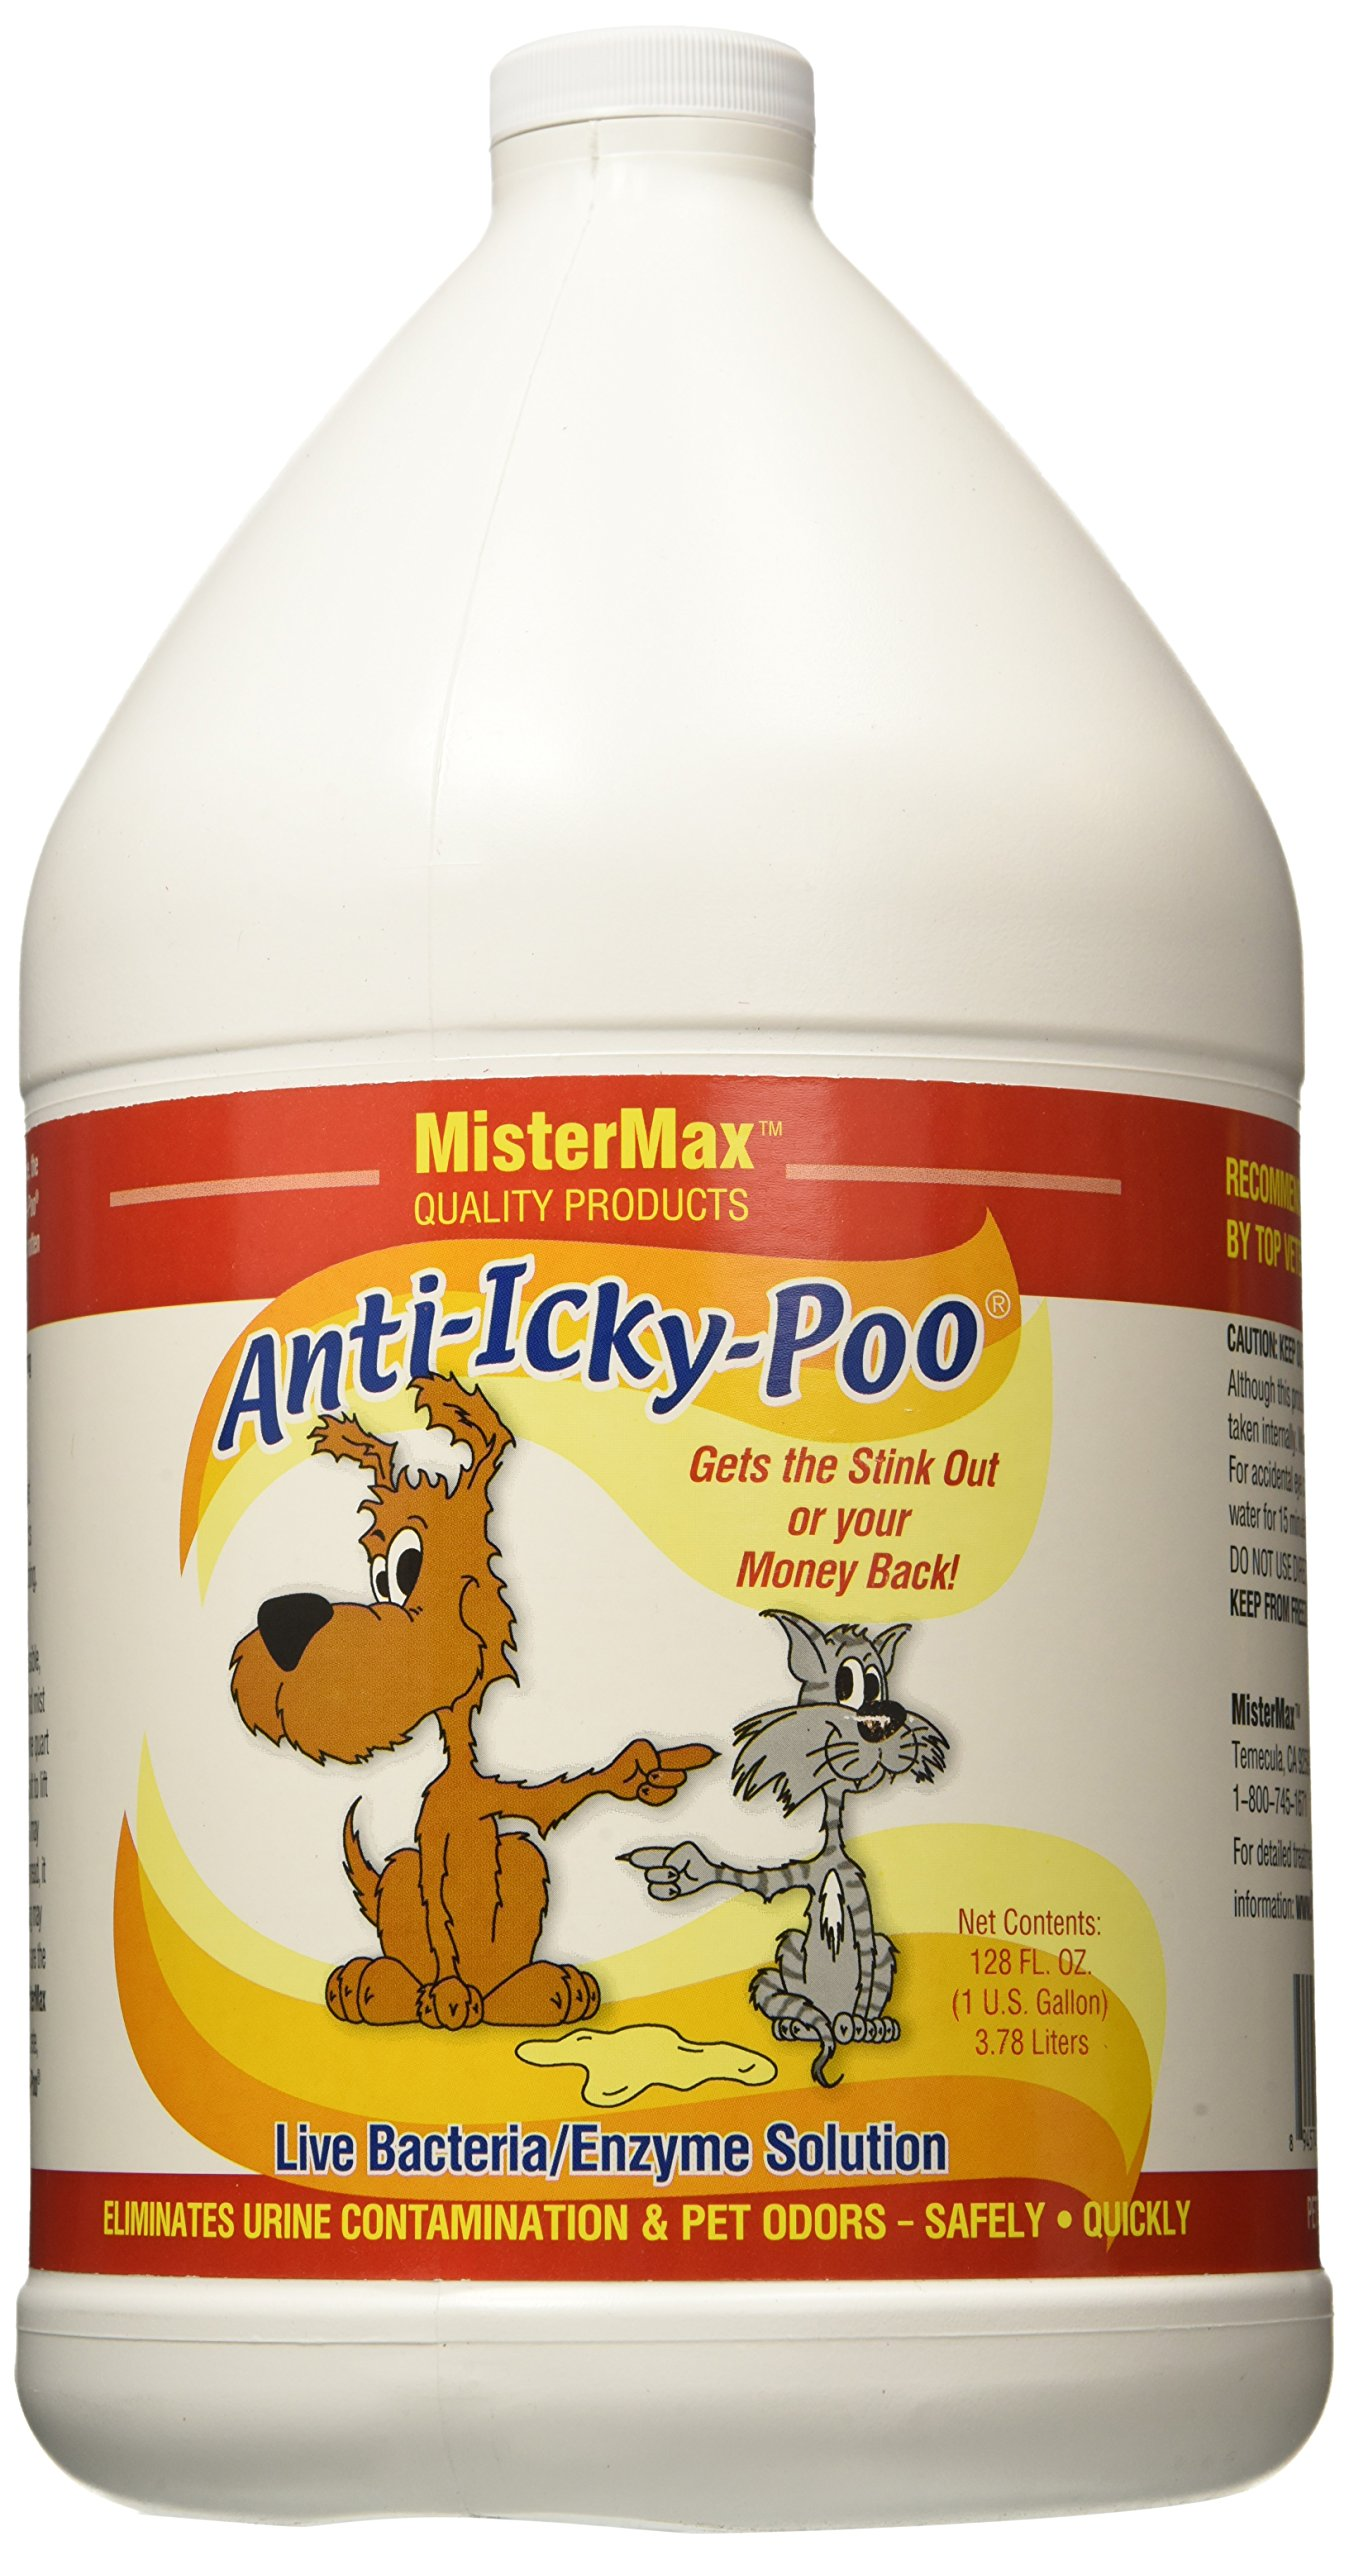 Mister Max Original Scent Anti Icky Poo Odor Remover, Gallon Size by Mister Max